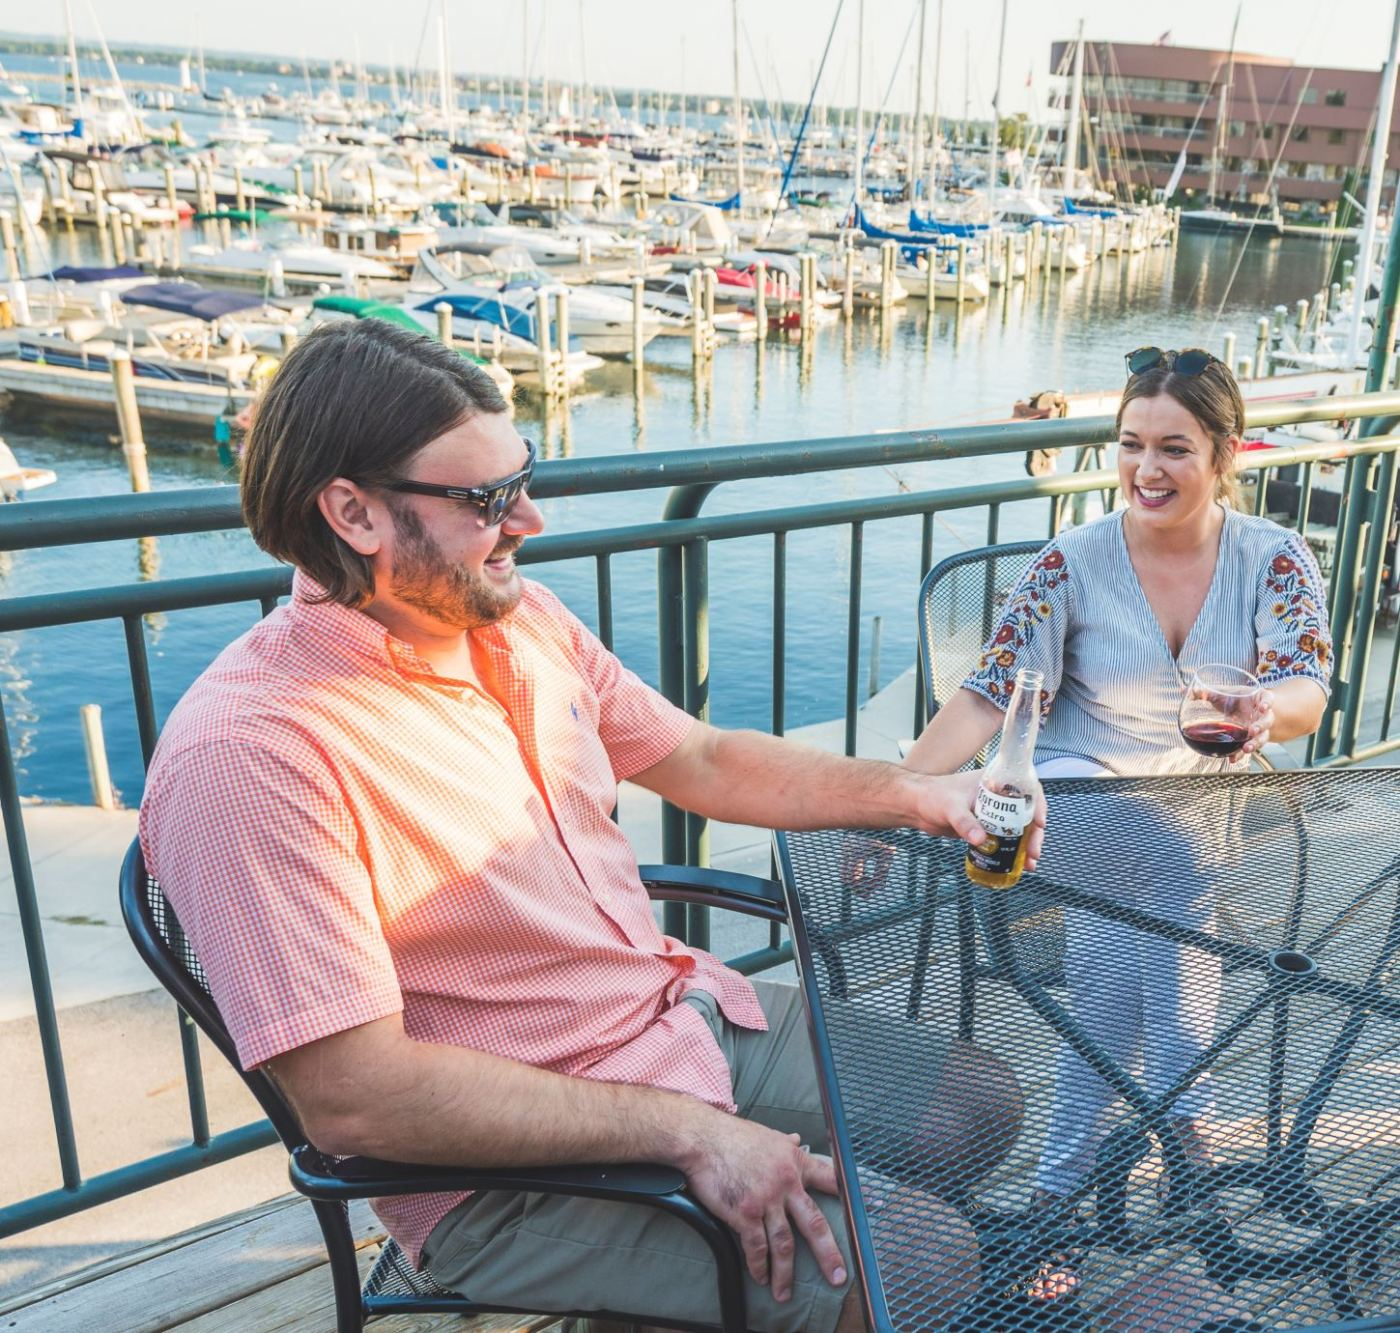 Looking for places to dine alfresco? Traverse City has over 200 beautiful options